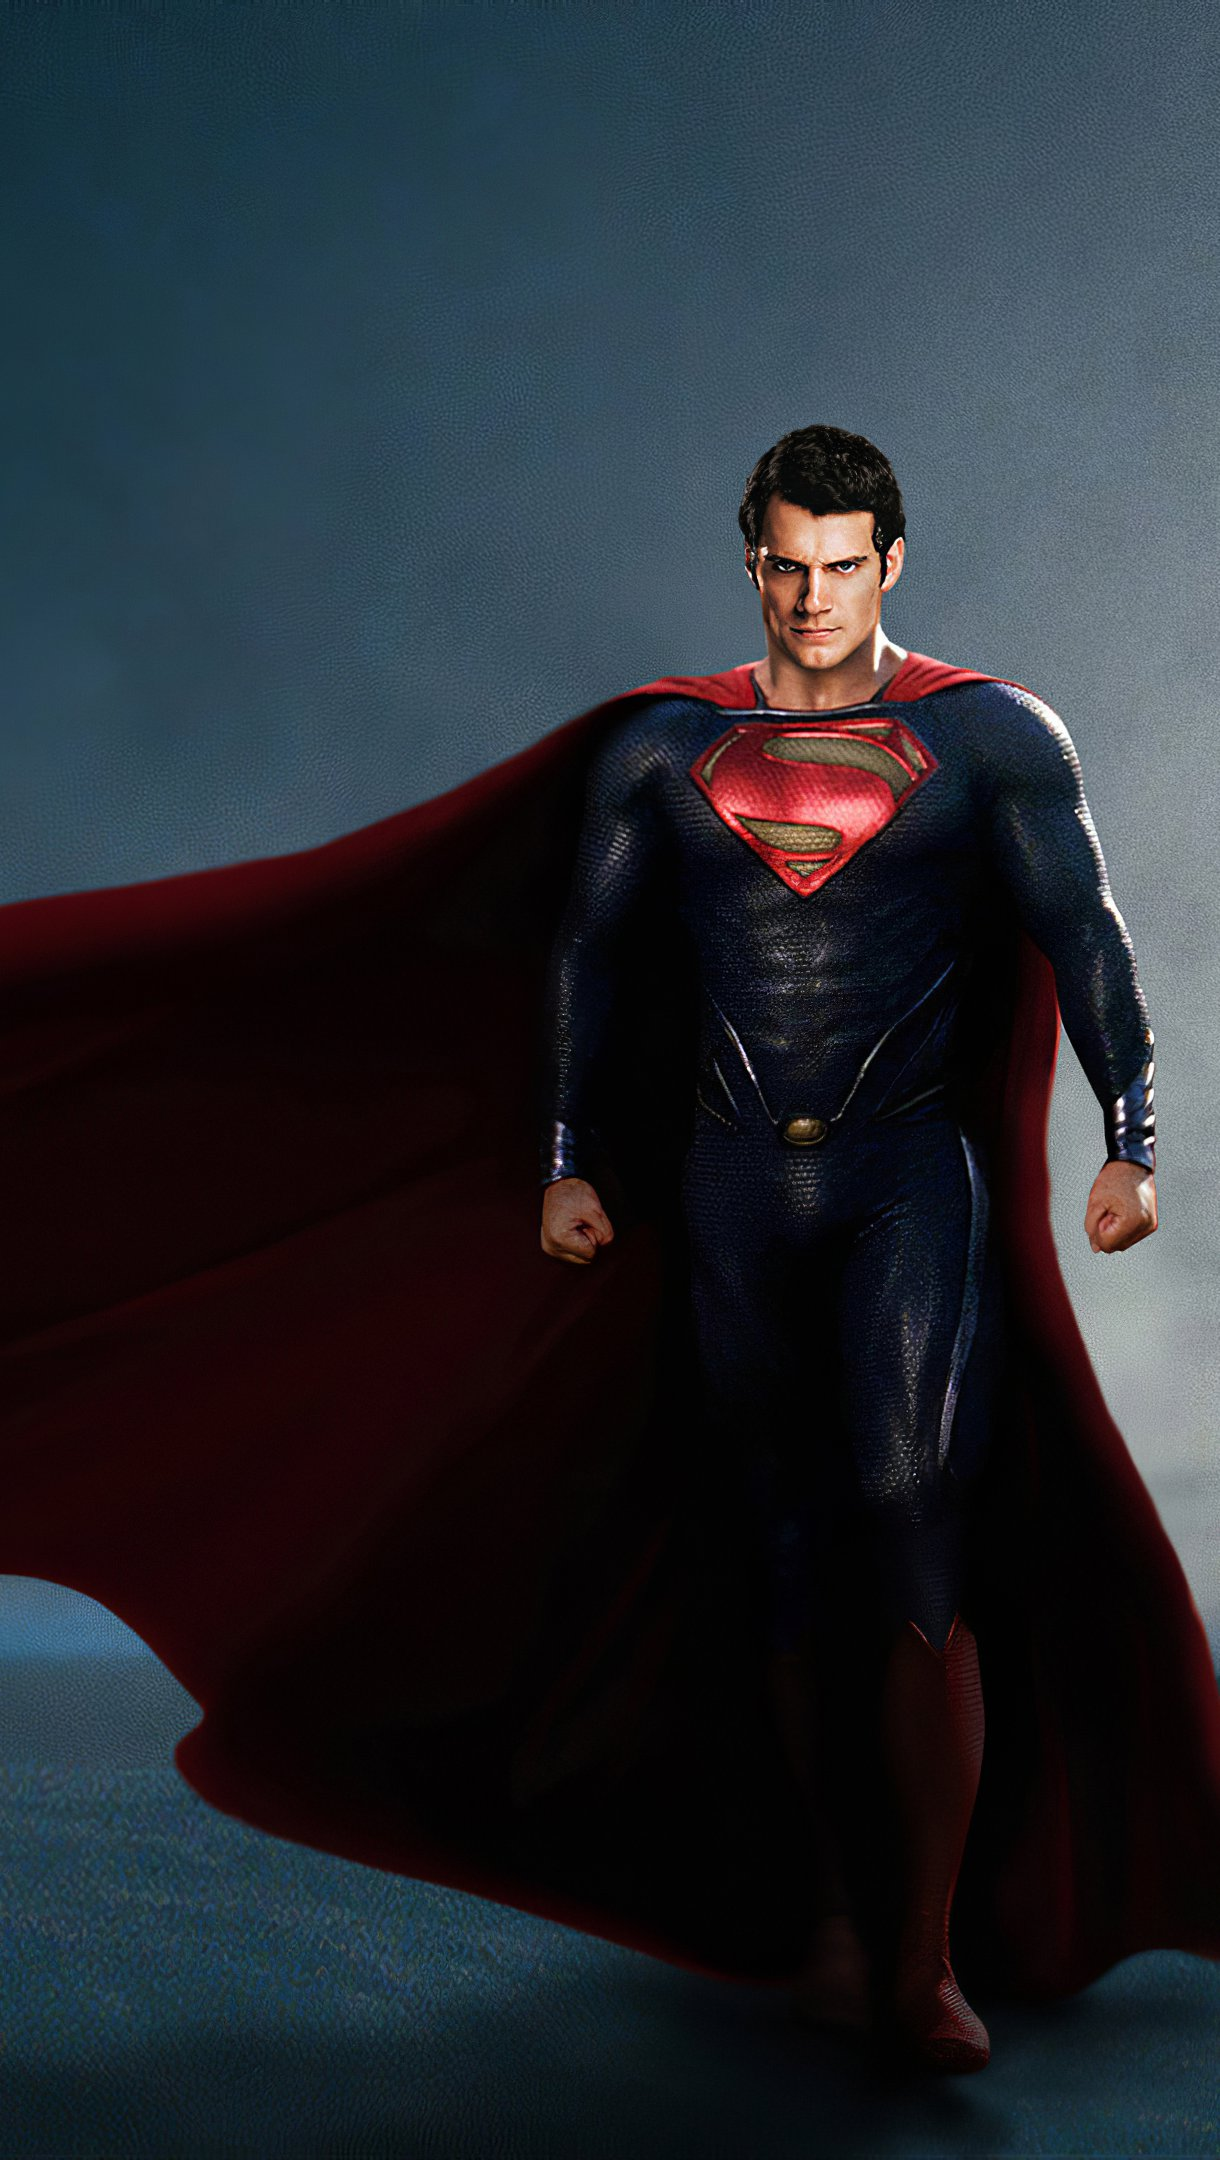 Wallpaper Henry Cavill as Superman Vertical